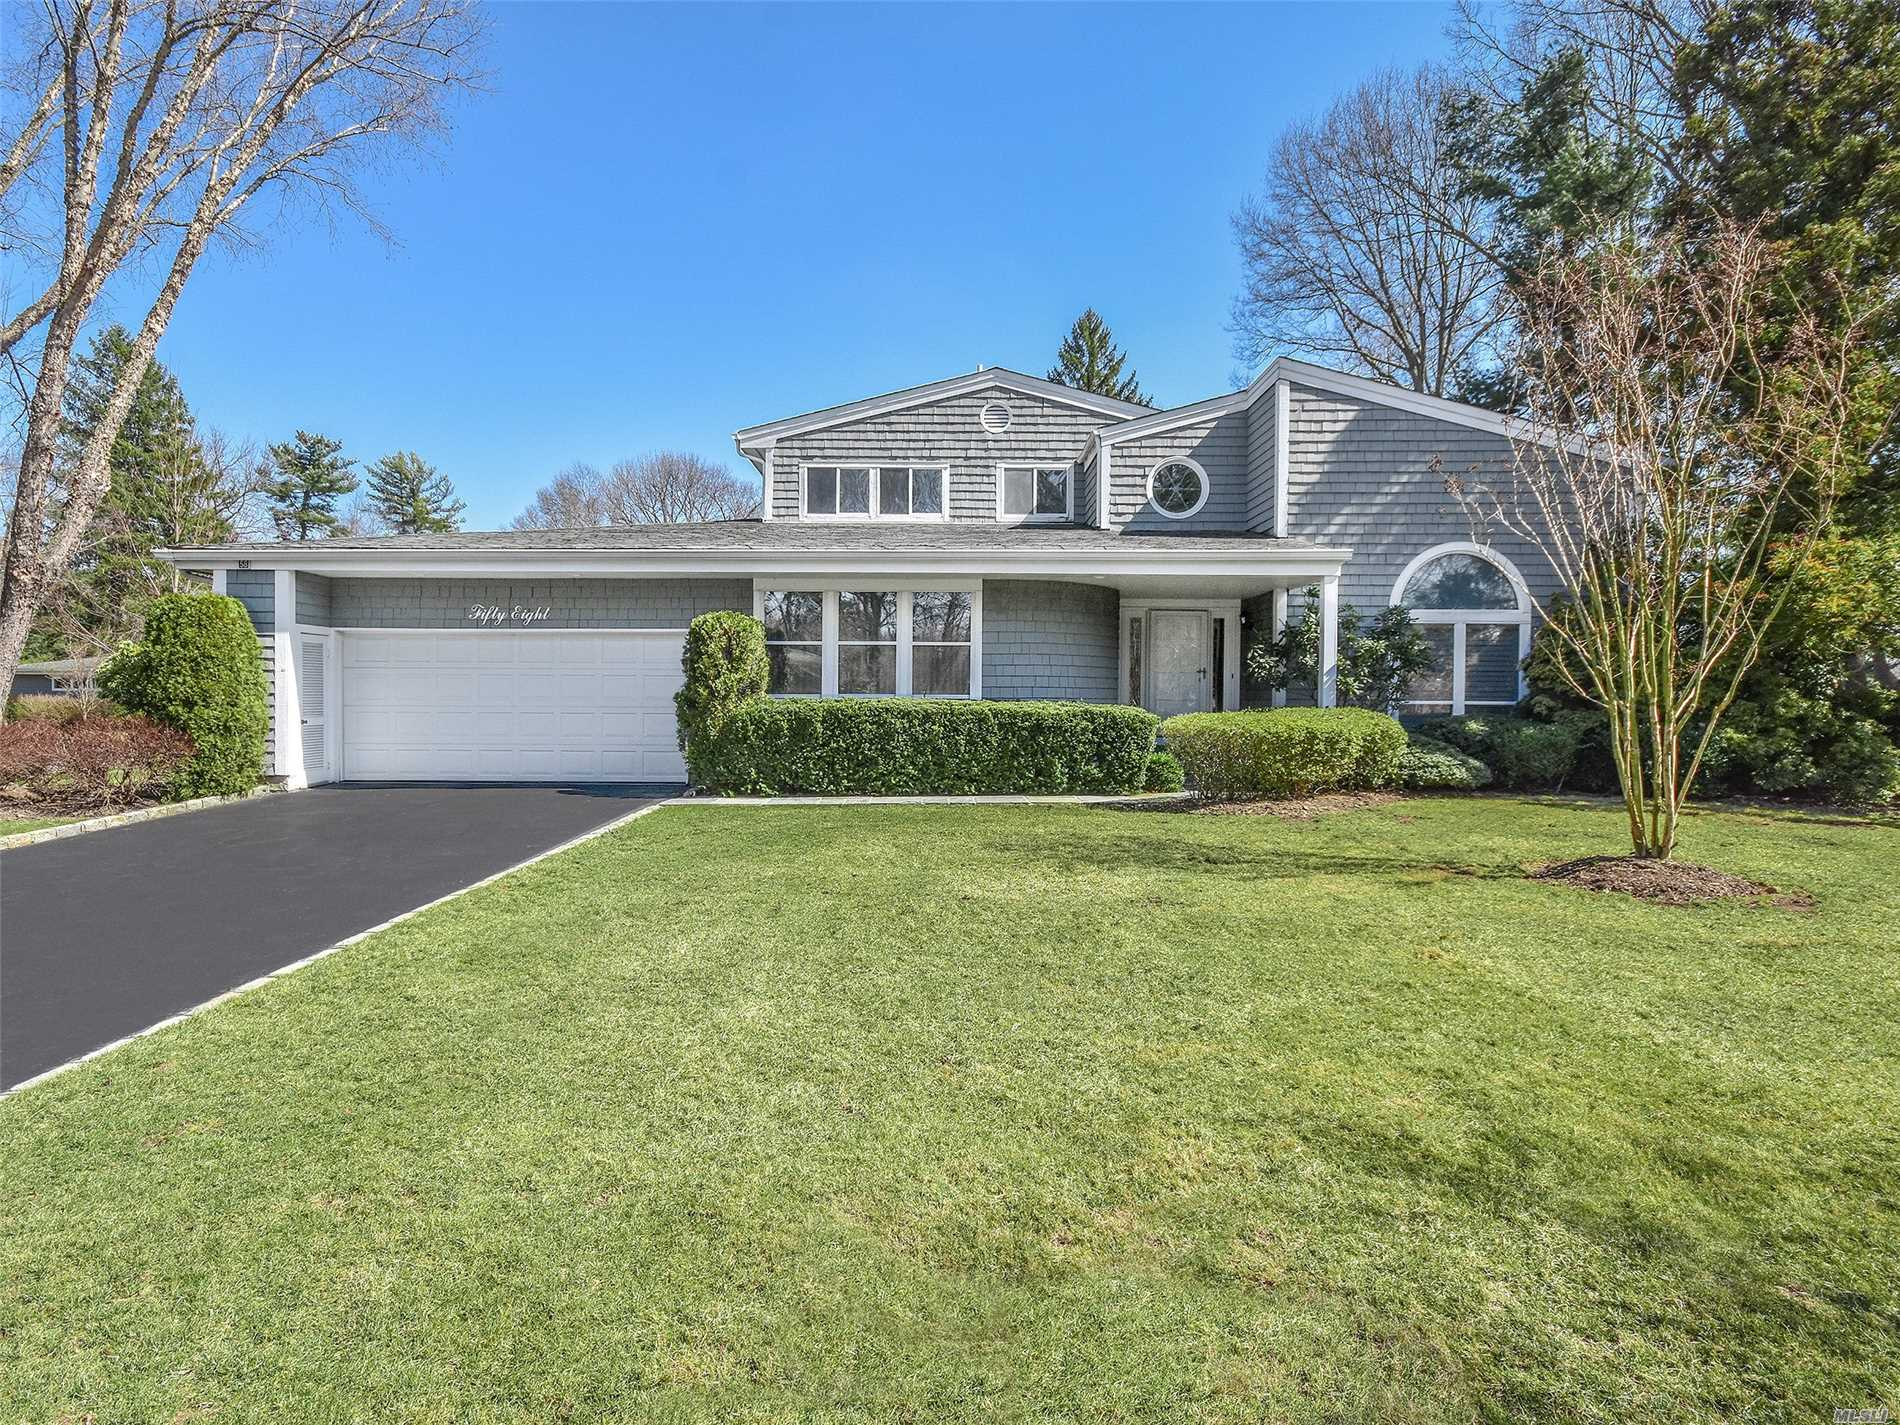 Must See! Desirable North Hills Gated Community Of Spruce Pond. This Home Is Convenient To All. It Boasts Hand Crafted Built-ins, An Open Spacious Floor Plan And Master Bedroom En-Suite On The First Floor. 2 Car Garage, Community Tennis & Pool. Shuttle to Manhasset Train St.